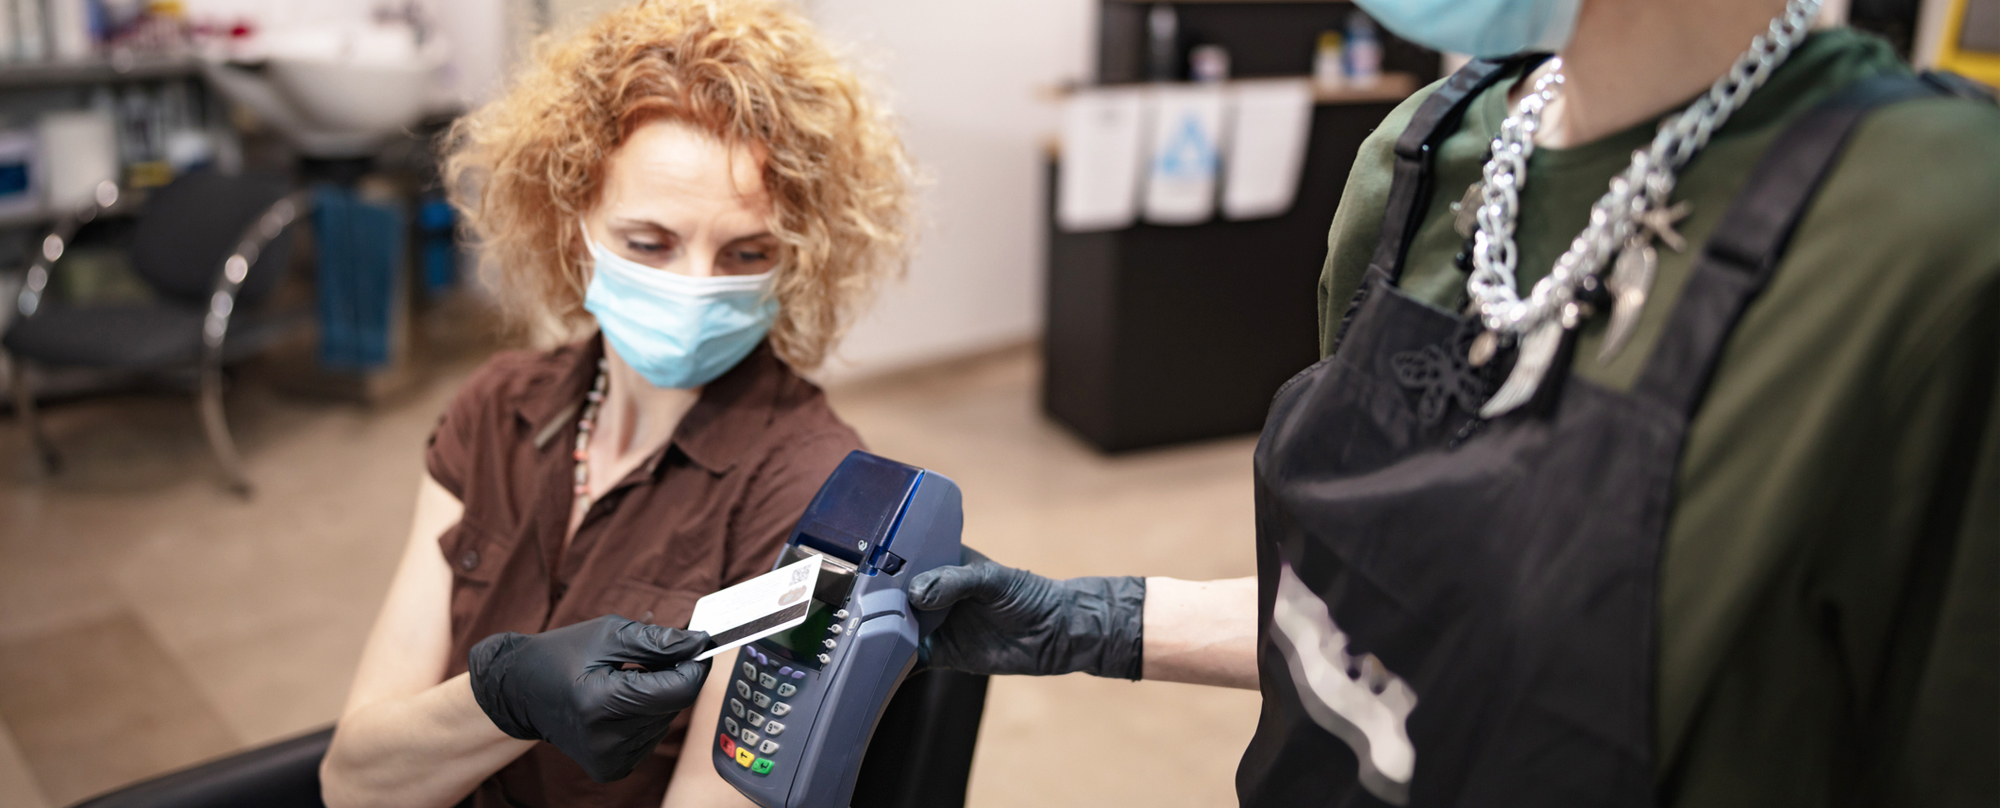 How To Maintain A Post-Lockdown, Top-Quality Salon Experience